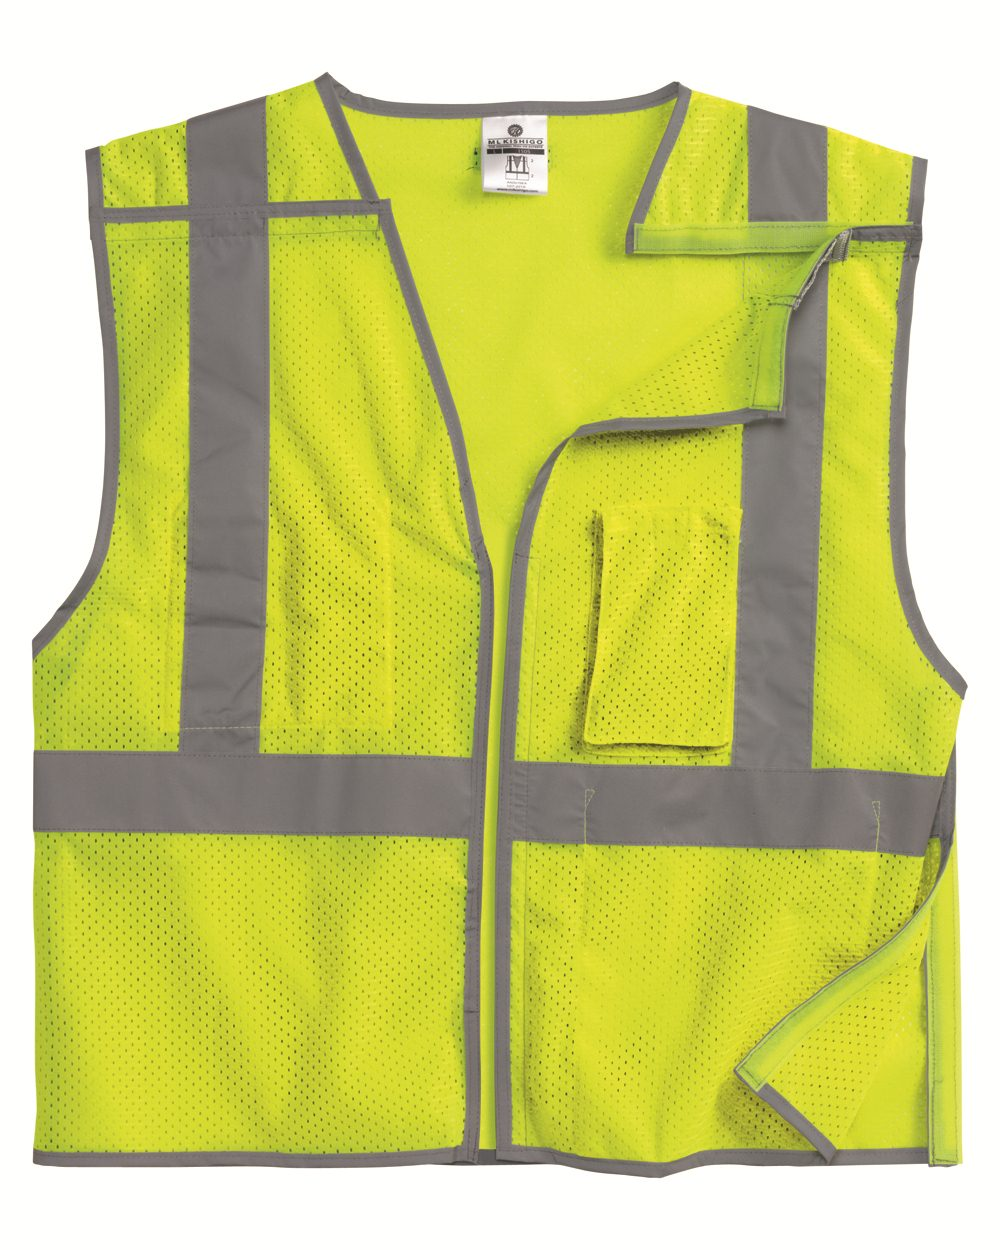 ML Kishigo 1505-1506 - Brilliant Series Economy Breakaway Vest